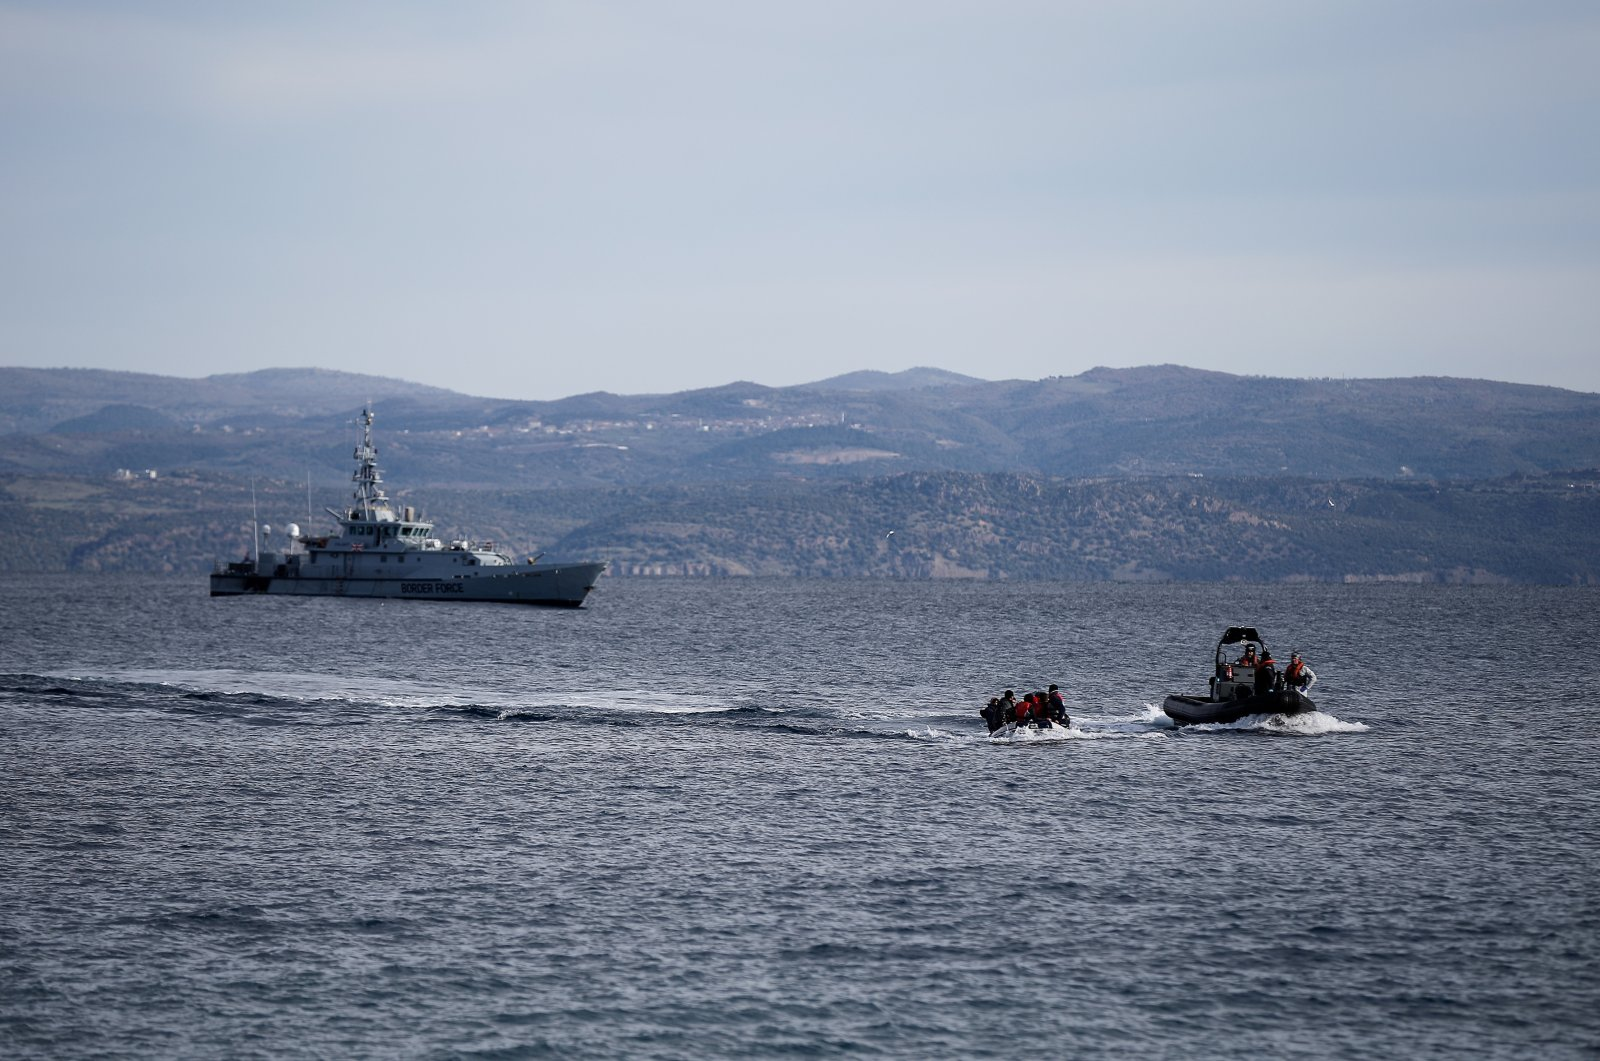 A rescue boat escorts a dinghy with migrants from Afghanistan as a Frontex vessel patrols in the background, on the island of Lesbos, Greece, Feb. 28, 2020. (Reuters File Photo)